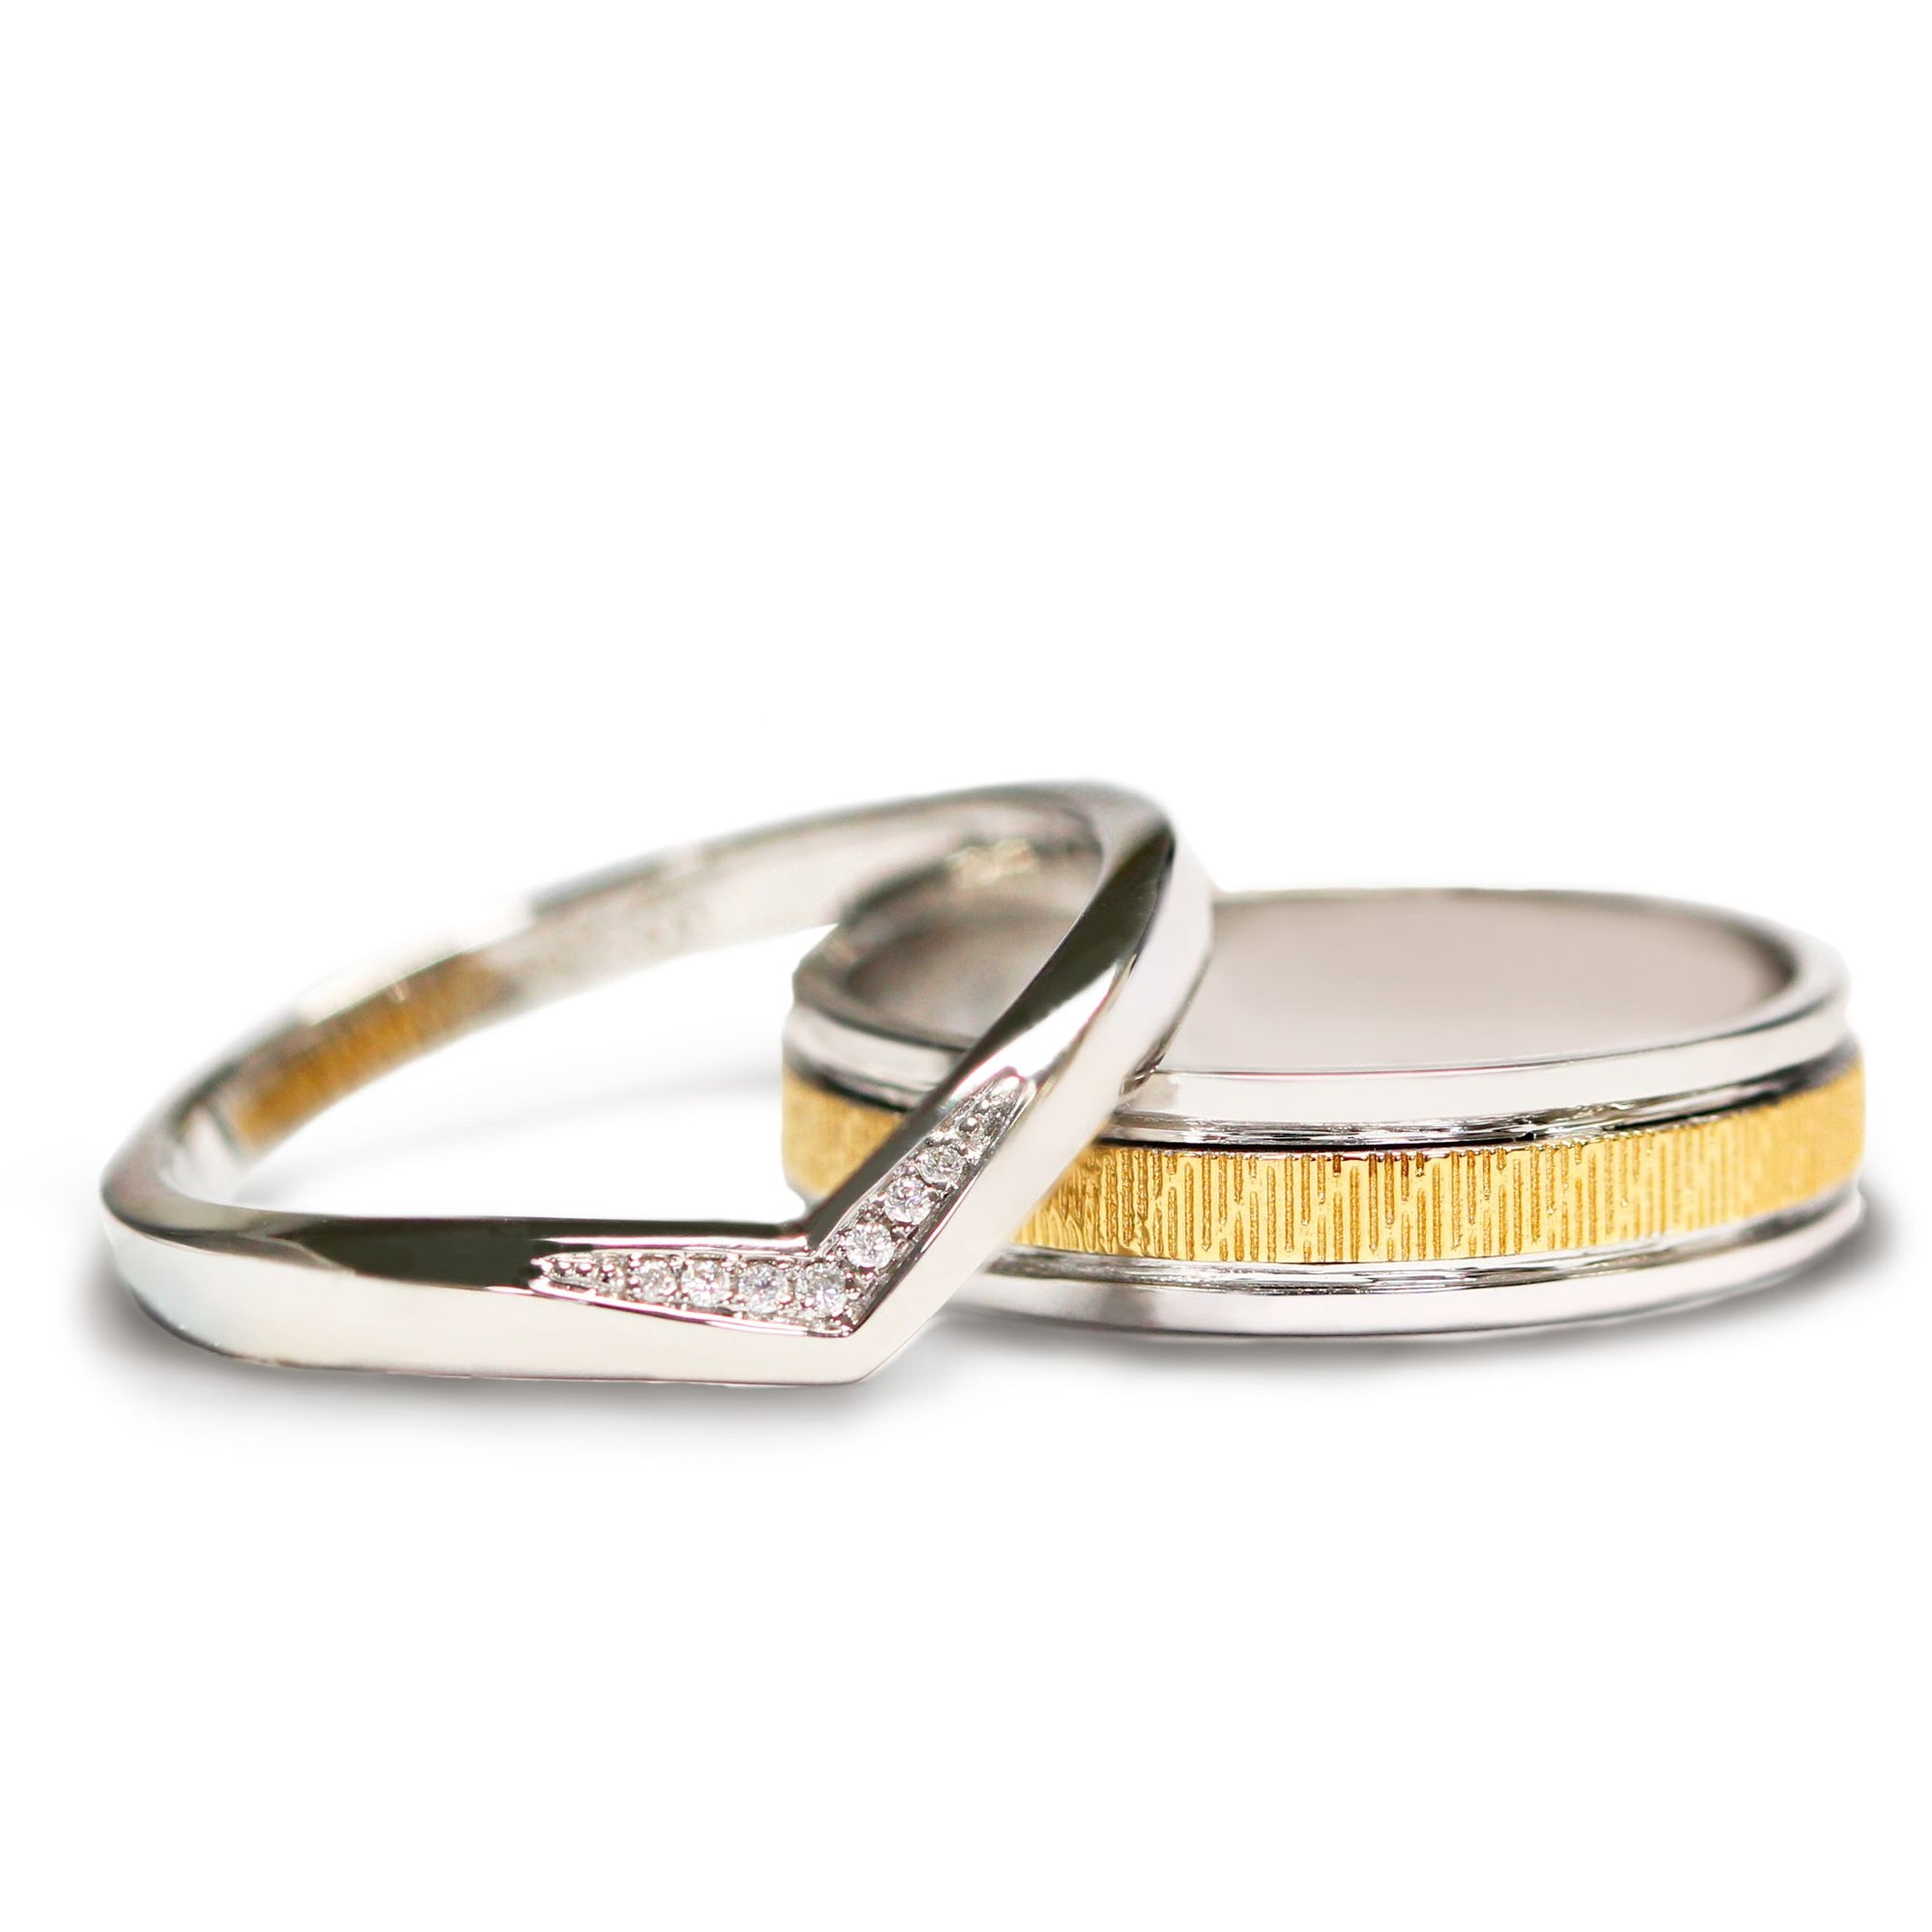 Benjamin Wedding Bands in Art-Carved Yellow Gold and Beautifully Crafted V Stacking Ring - LeCaine Gems